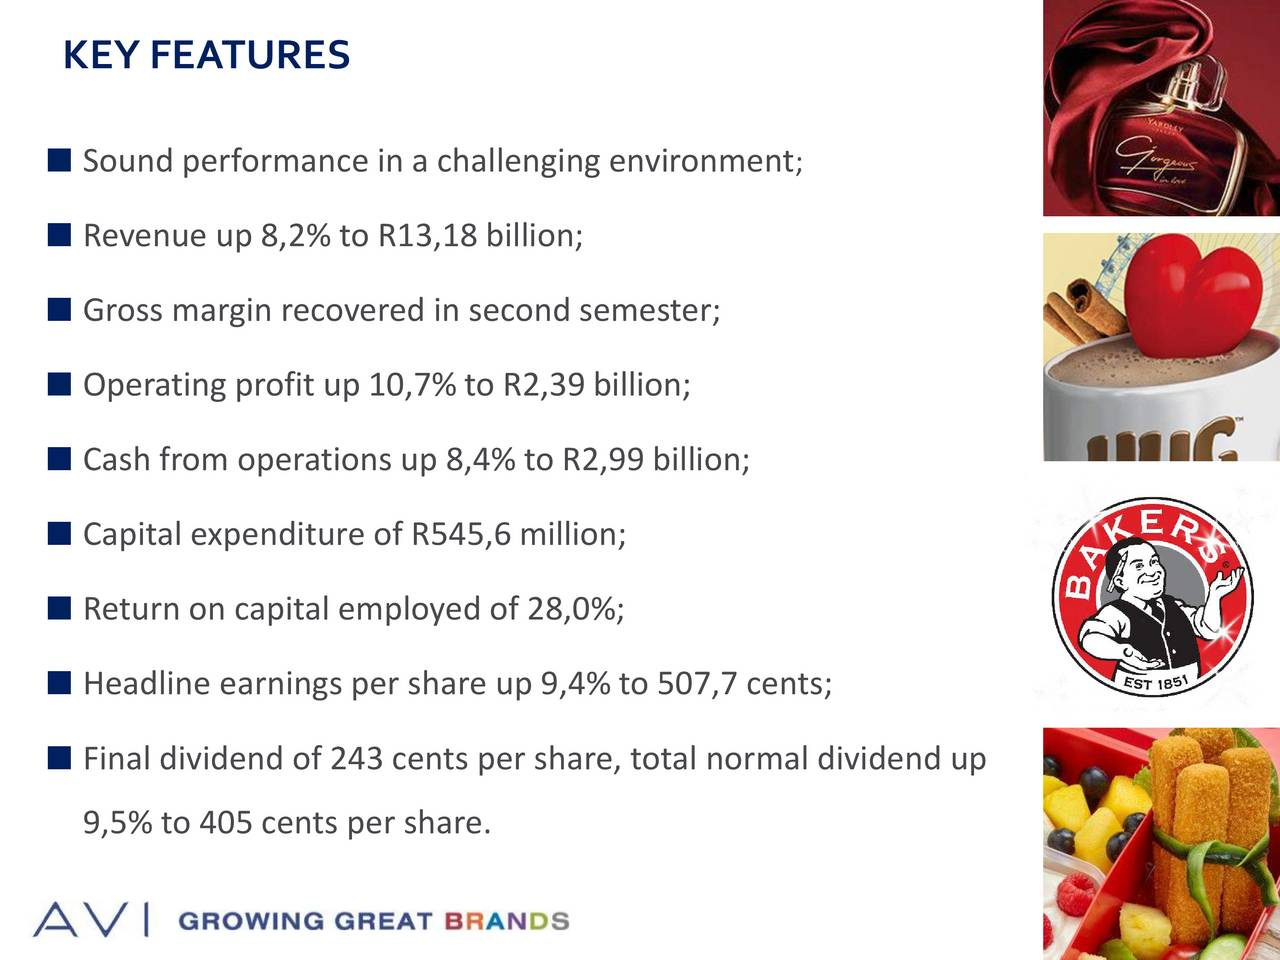 Sound performance in a challenging ;nvironment Revenue up 8,2% to R13,18 billion; Gross margin recovered in second semester; Operating profit up 10,7% to R2,39 billion; Cash from operations up 8,4% to R2,99 billion; Capital expenditure of R545,6 million; Return on capital employed of 28,0%; Headline earnings per share up 9,4% to 507,7 cents; Final dividend of 243 cents per share, total normal dividend up 9,5% to 405 cents per share.